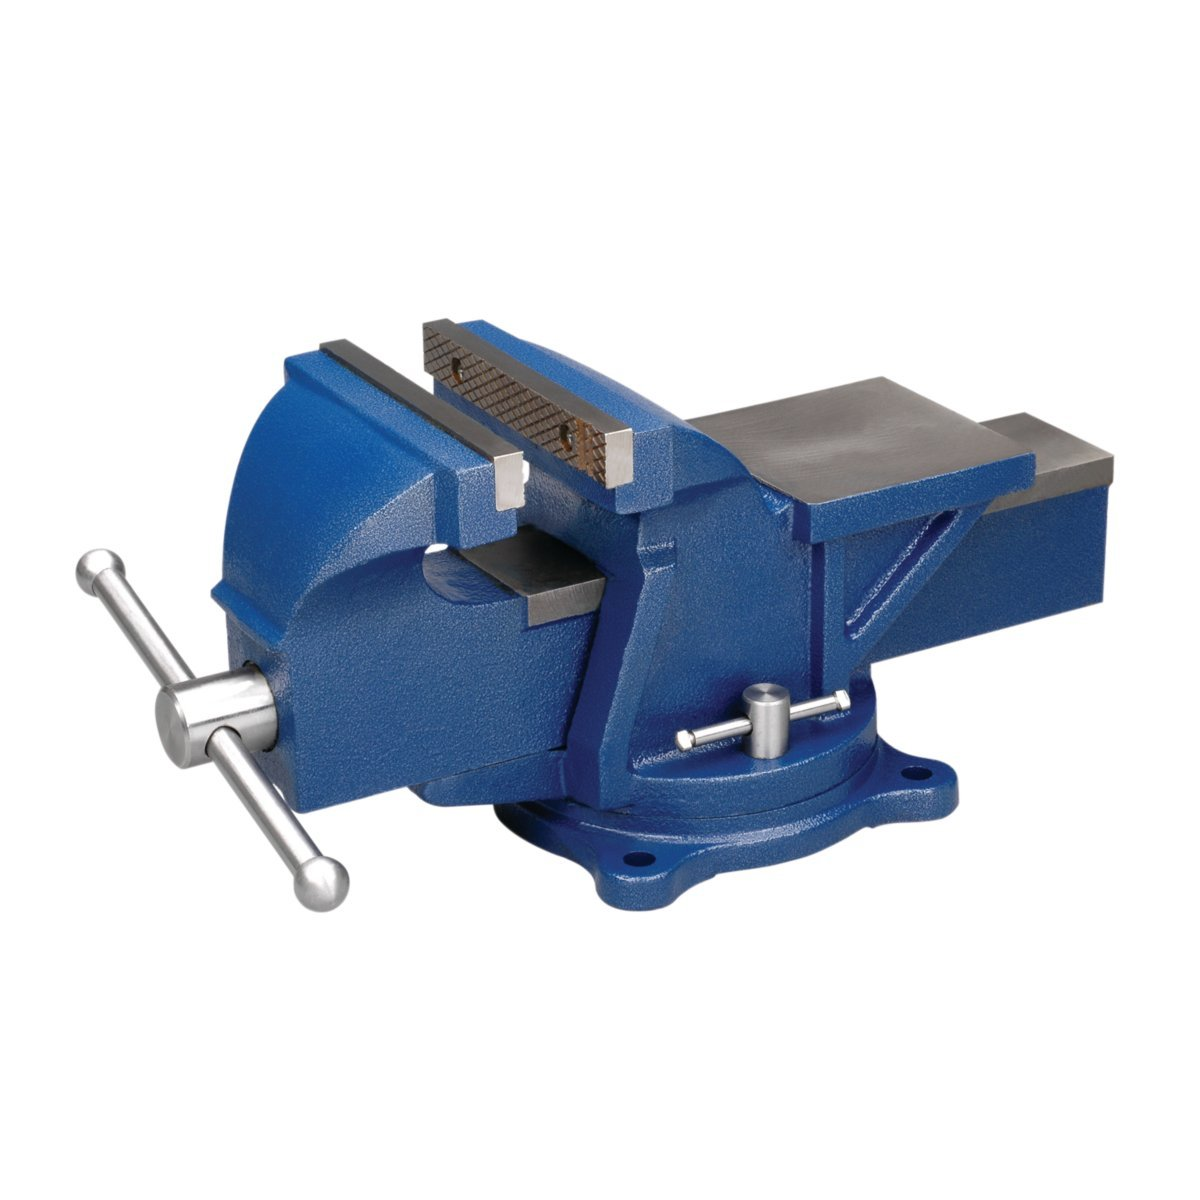 Wilton 11106 Wilton Bench Vise, Jaw Width 6-Inch, Jaw Opening 6-Inch by Wilton